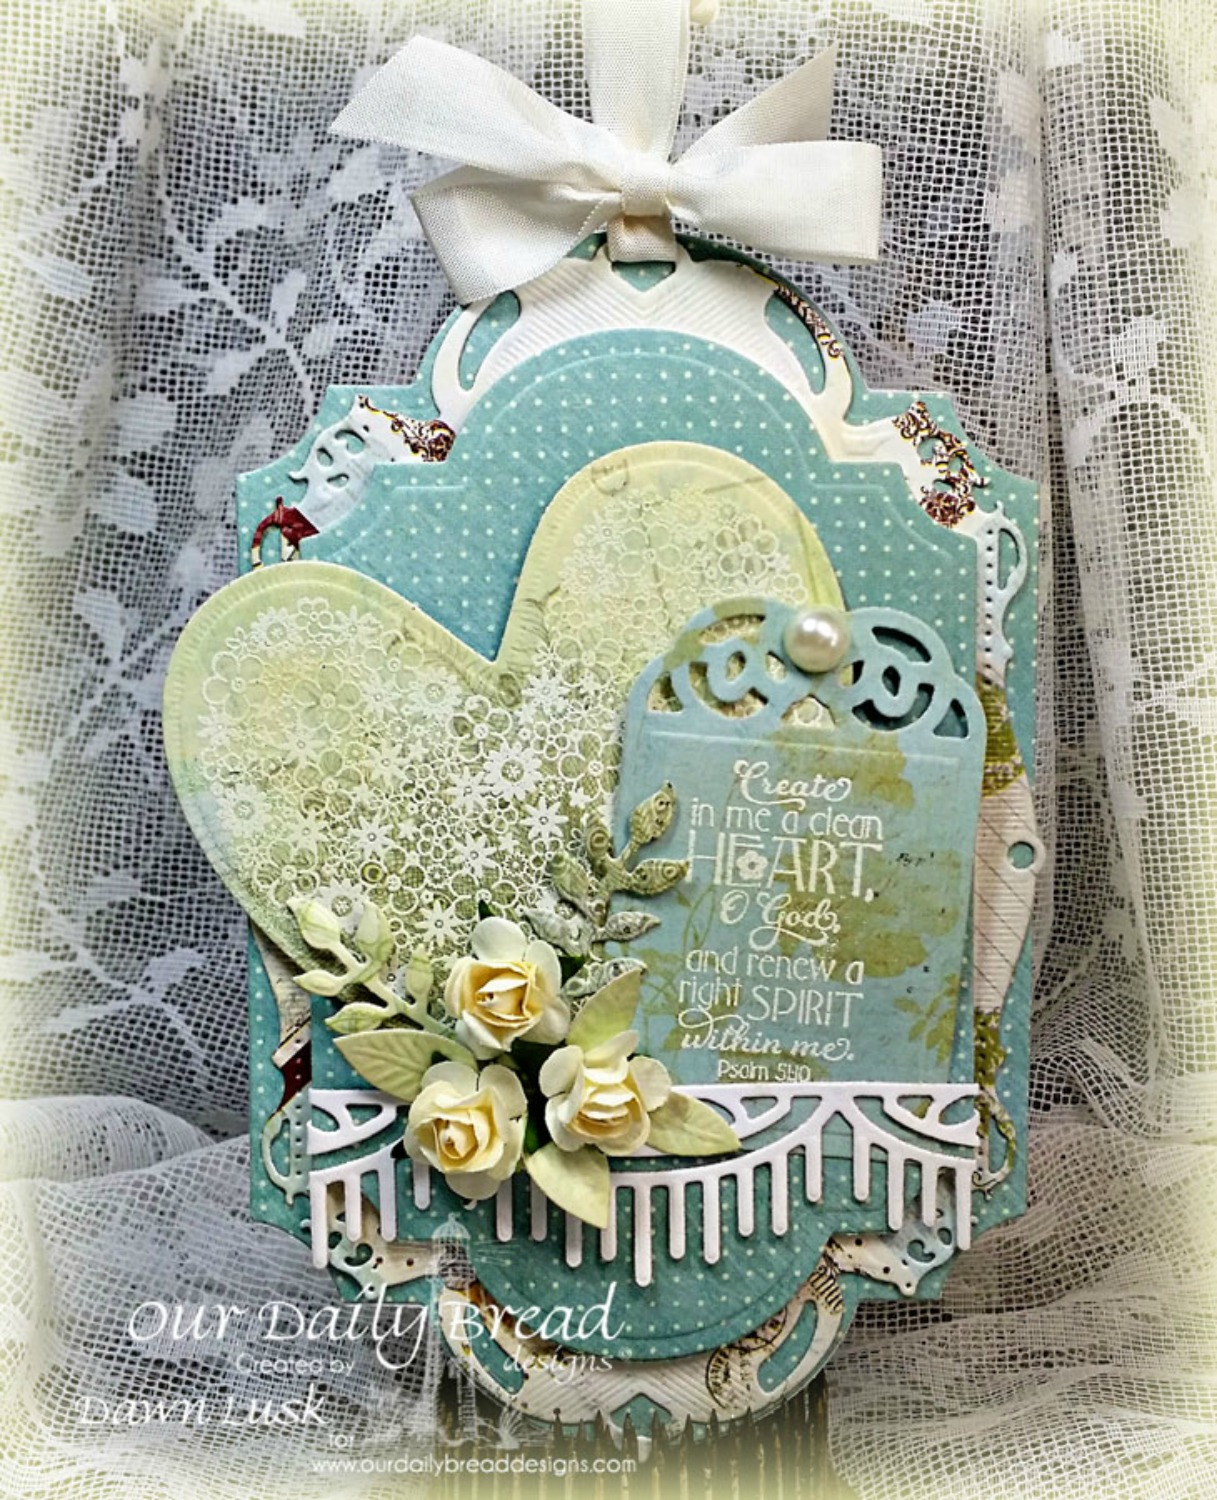 Stamps - Our Daily Bread Designs Clean Heart, ODBD Custom Ornate Hearts Die, ODBD Custom Beautiful Borders Dies, ODBD Custom Recipe Card and Tags Dies